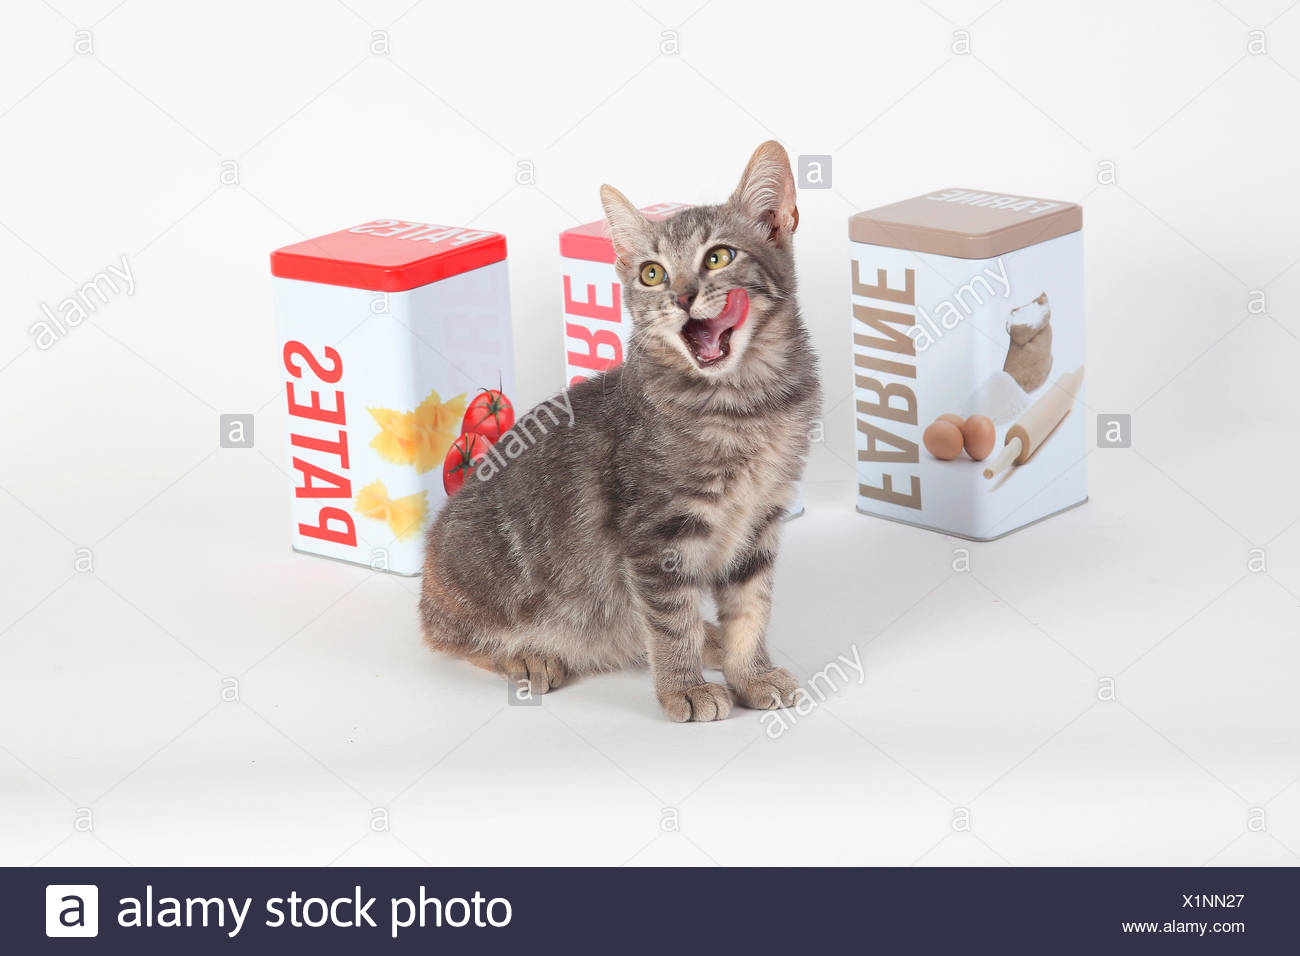 Kitten yawning in front of food boxes on white background - Stock Image